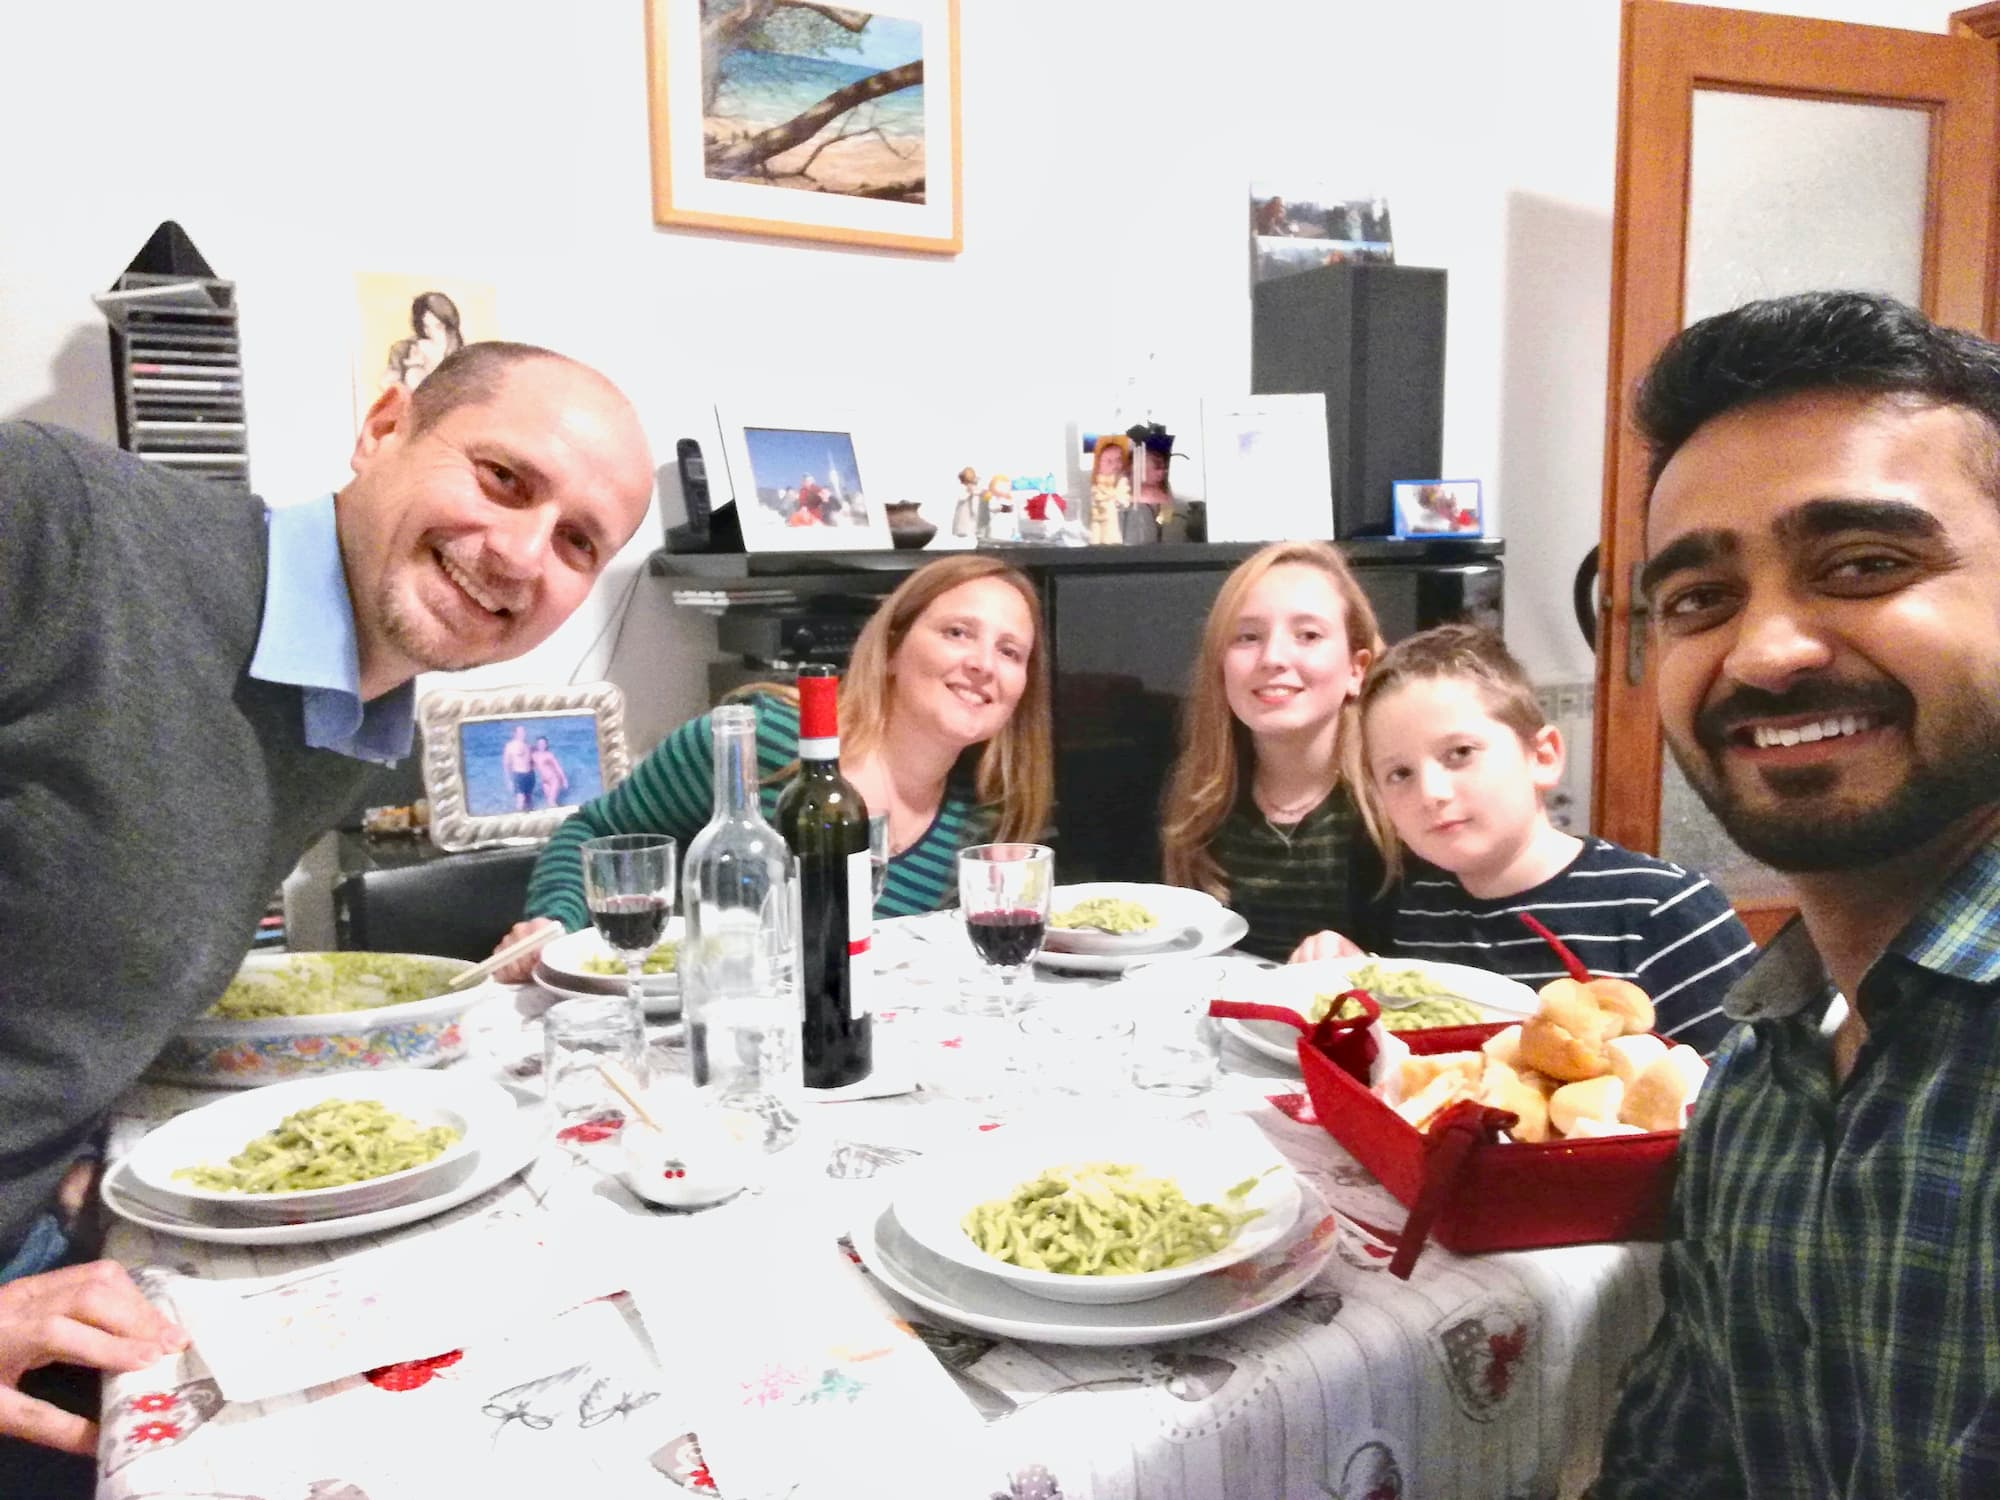 International student has dinner with an Italian family - Dinehome